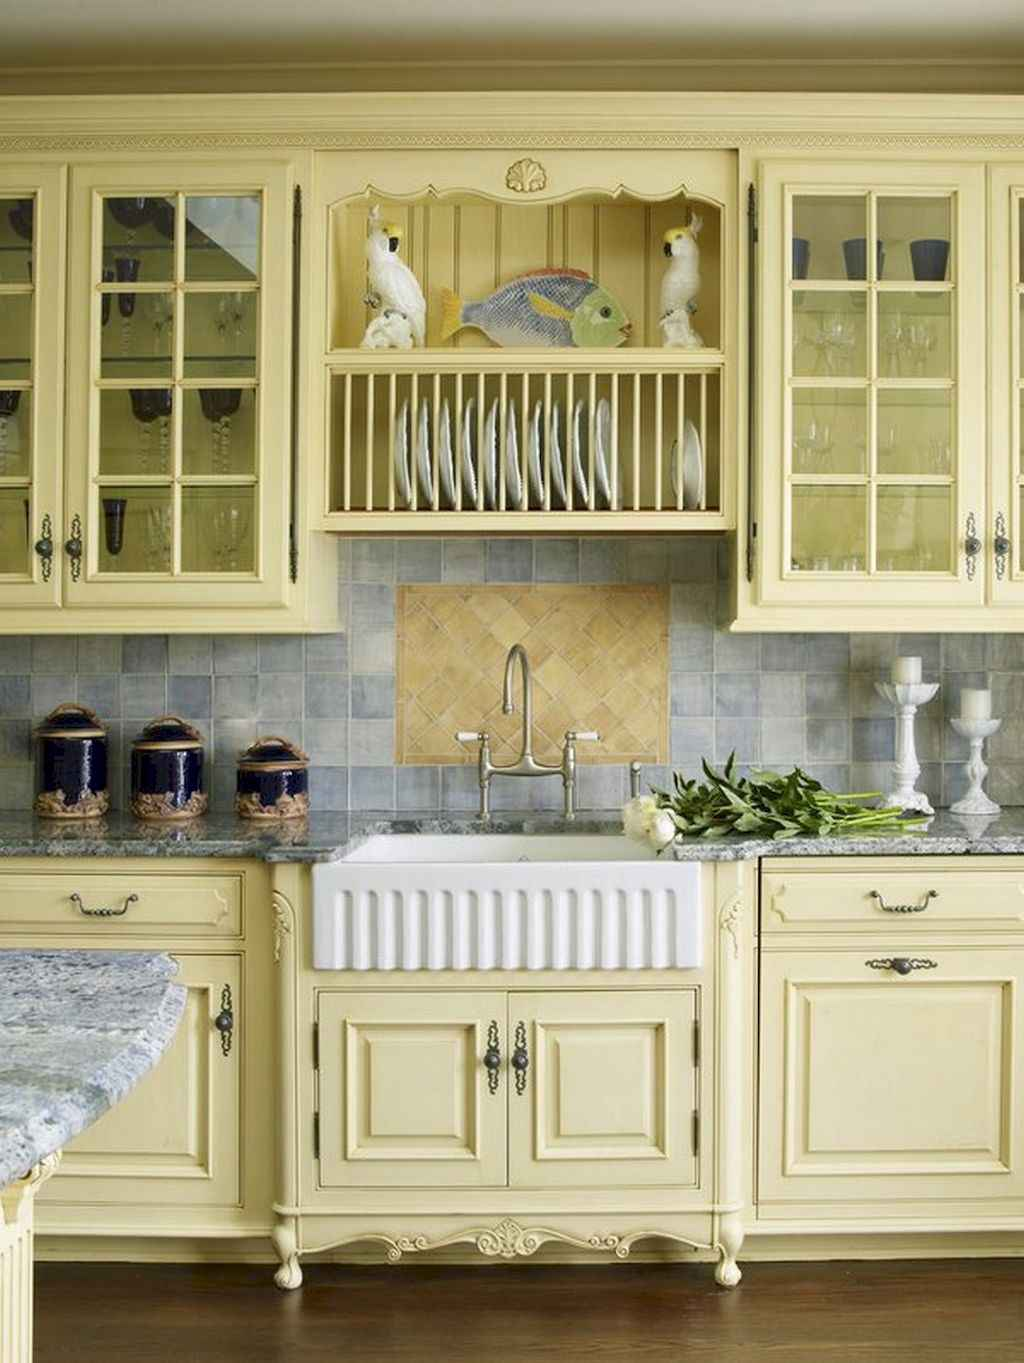 Incredible french country kitchen design ideas (18)